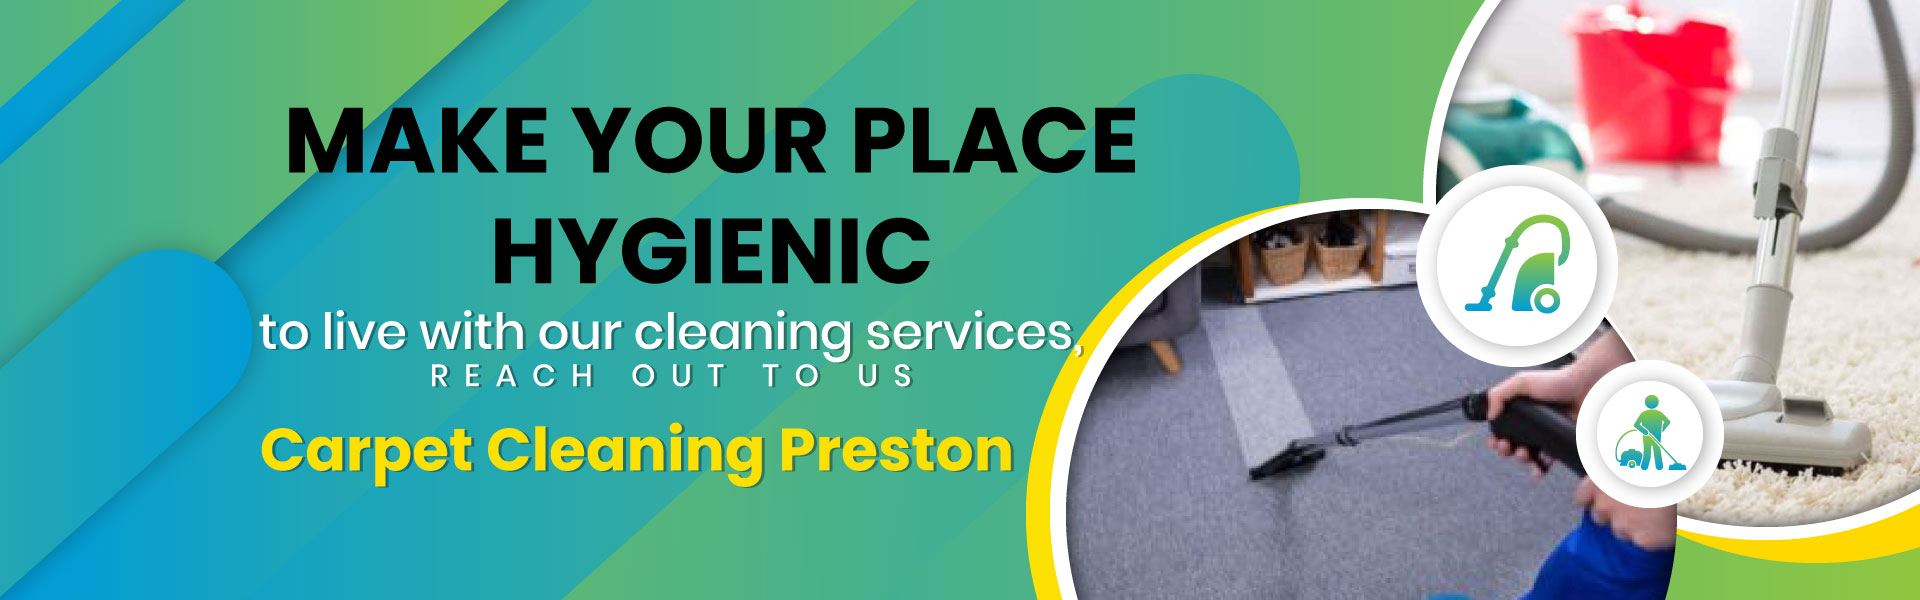 Best Carpet Cleaning Preston